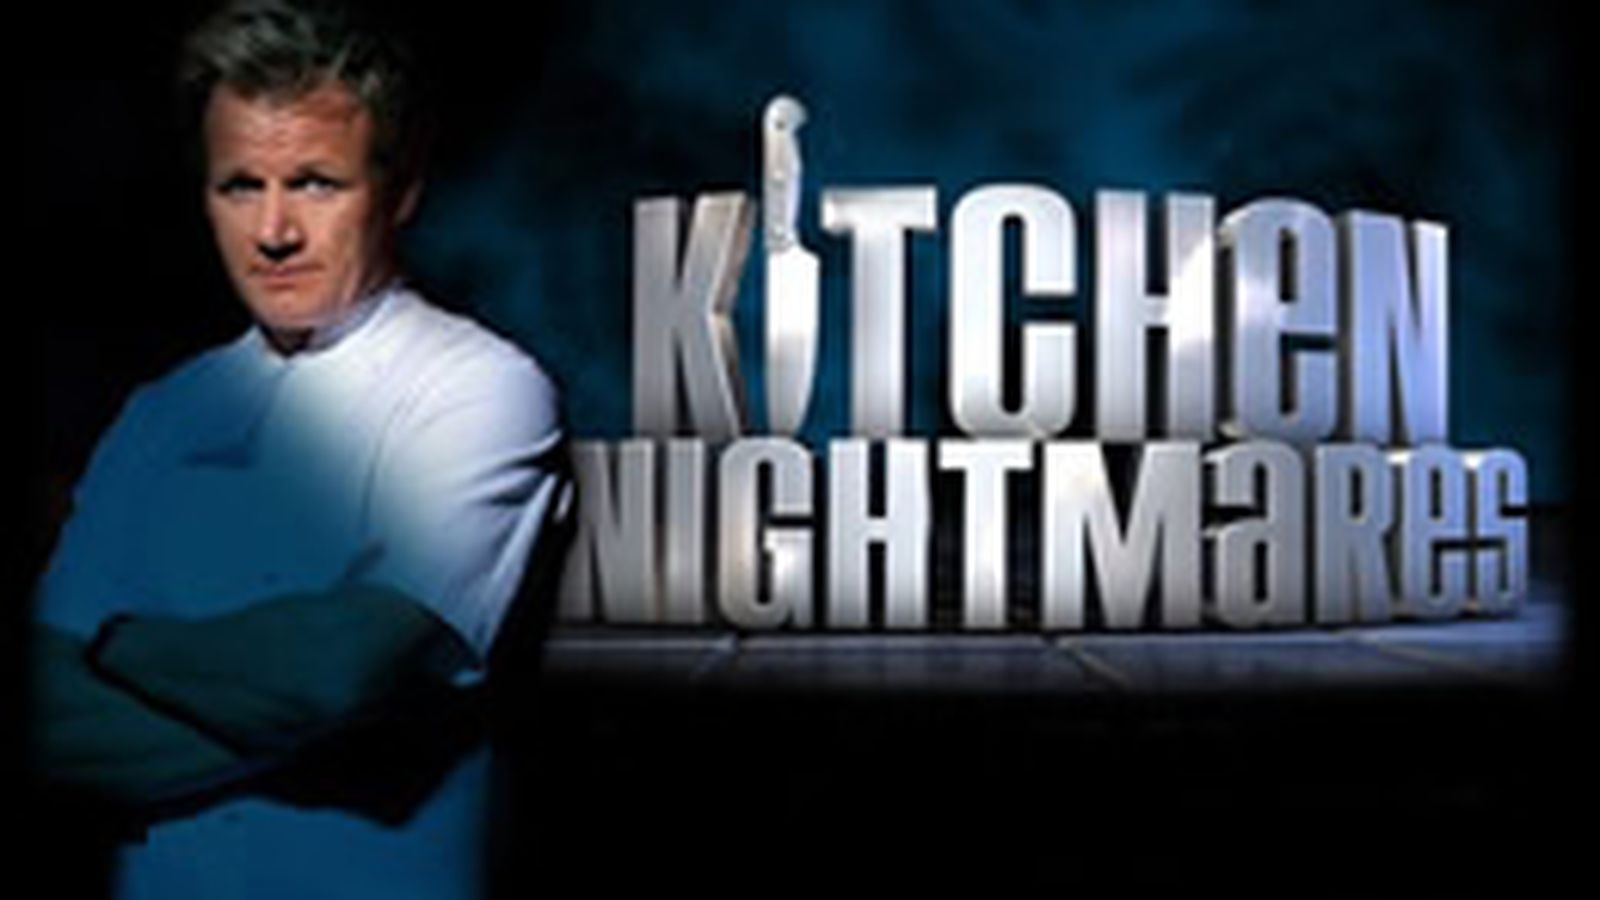 Philadelphia Kitchen Nightmares